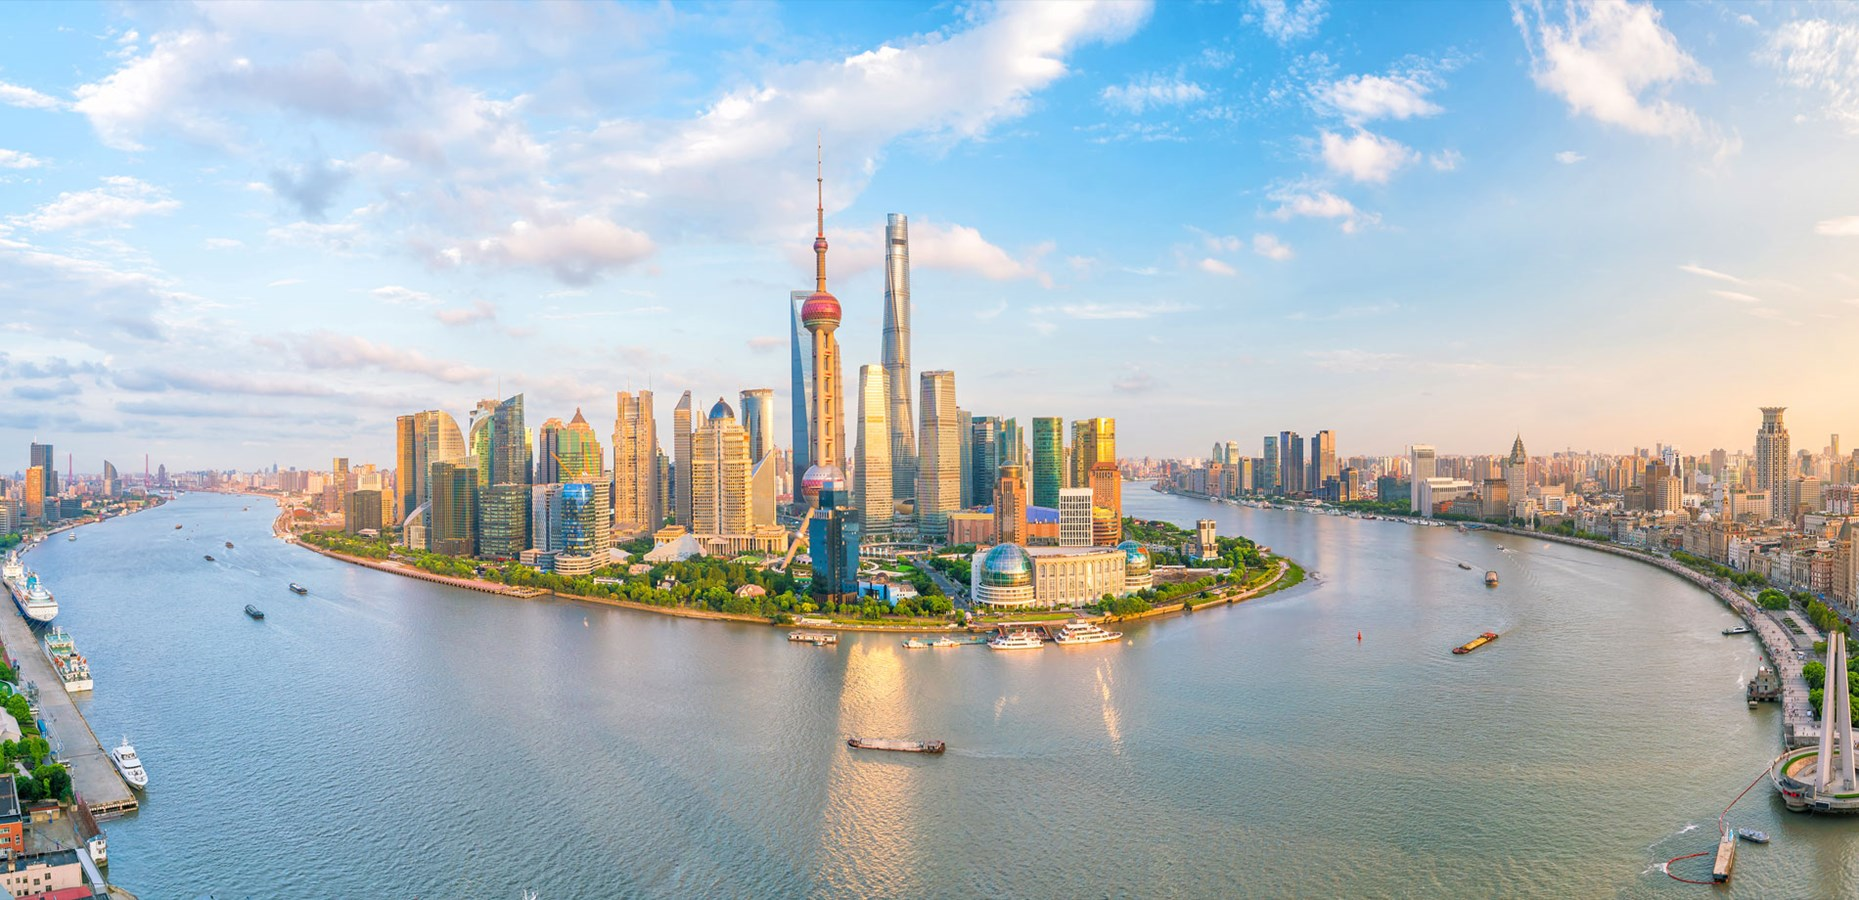 Coronavirus: Shanghai rises to become world's most connected city